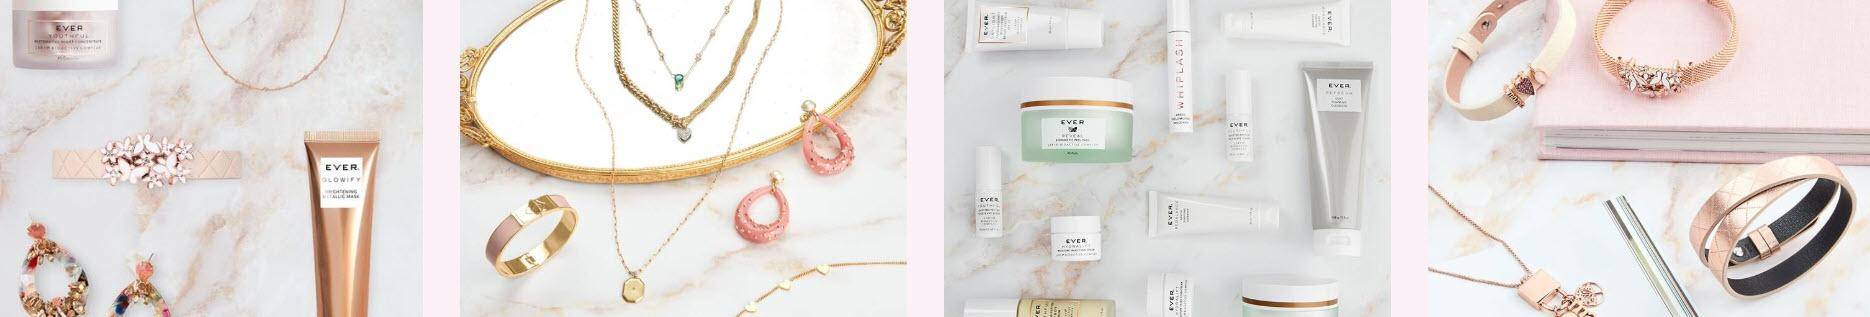 Stella Dot MLM Review - Products